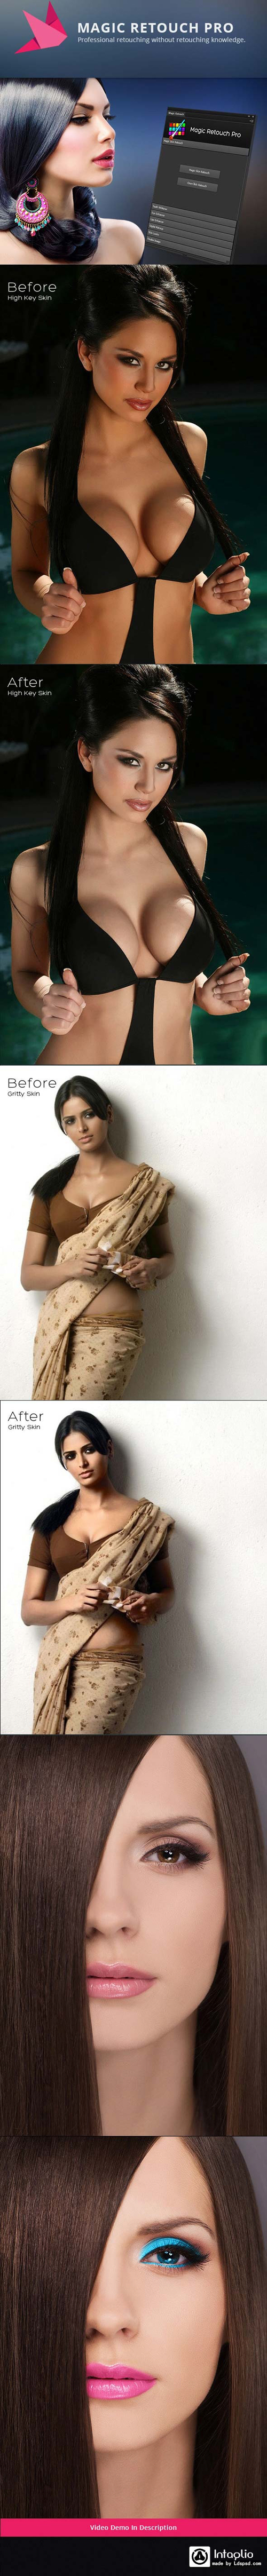 Magic Retouch skin Photoshop Action free download